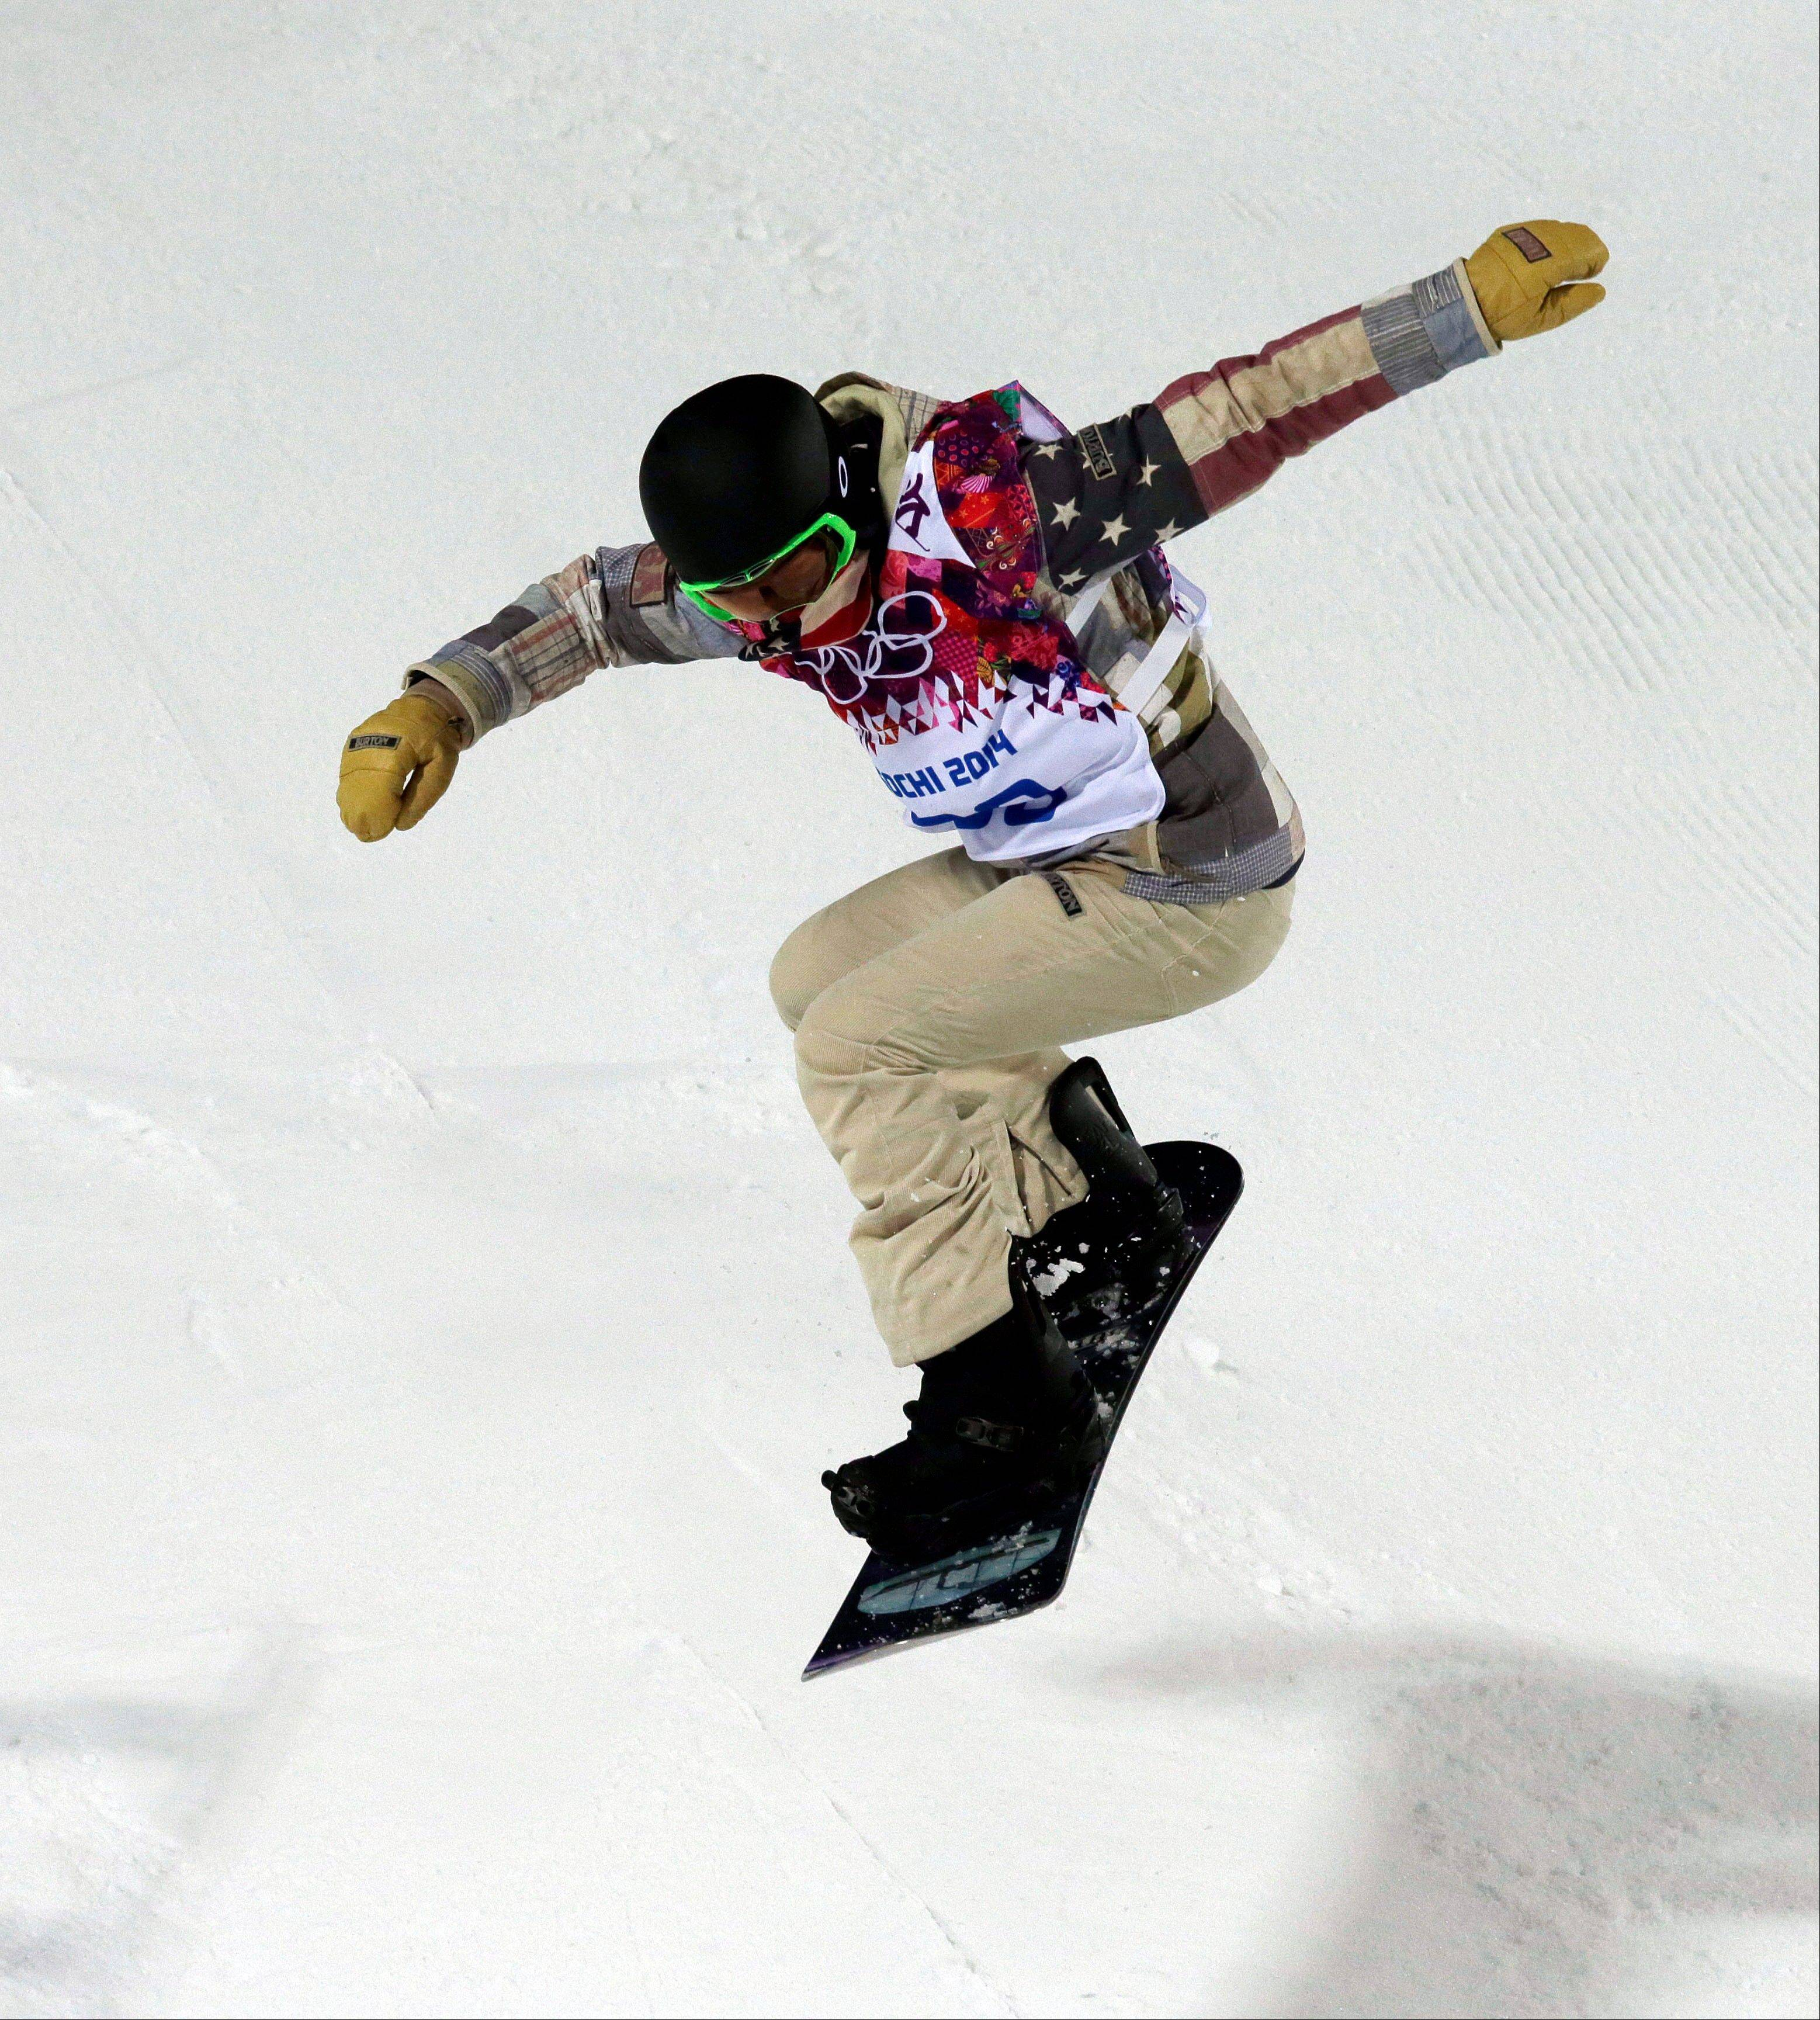 Shaun White of the United States trains in the half pipe at the Rosa Khutor Extreme Park, at the 2014 Winter Olympics, Sunday, Feb. 9, 2014, in Krasnaya Polyana, Russia. Half-pipe competition starts Tuesday Feb. 11.